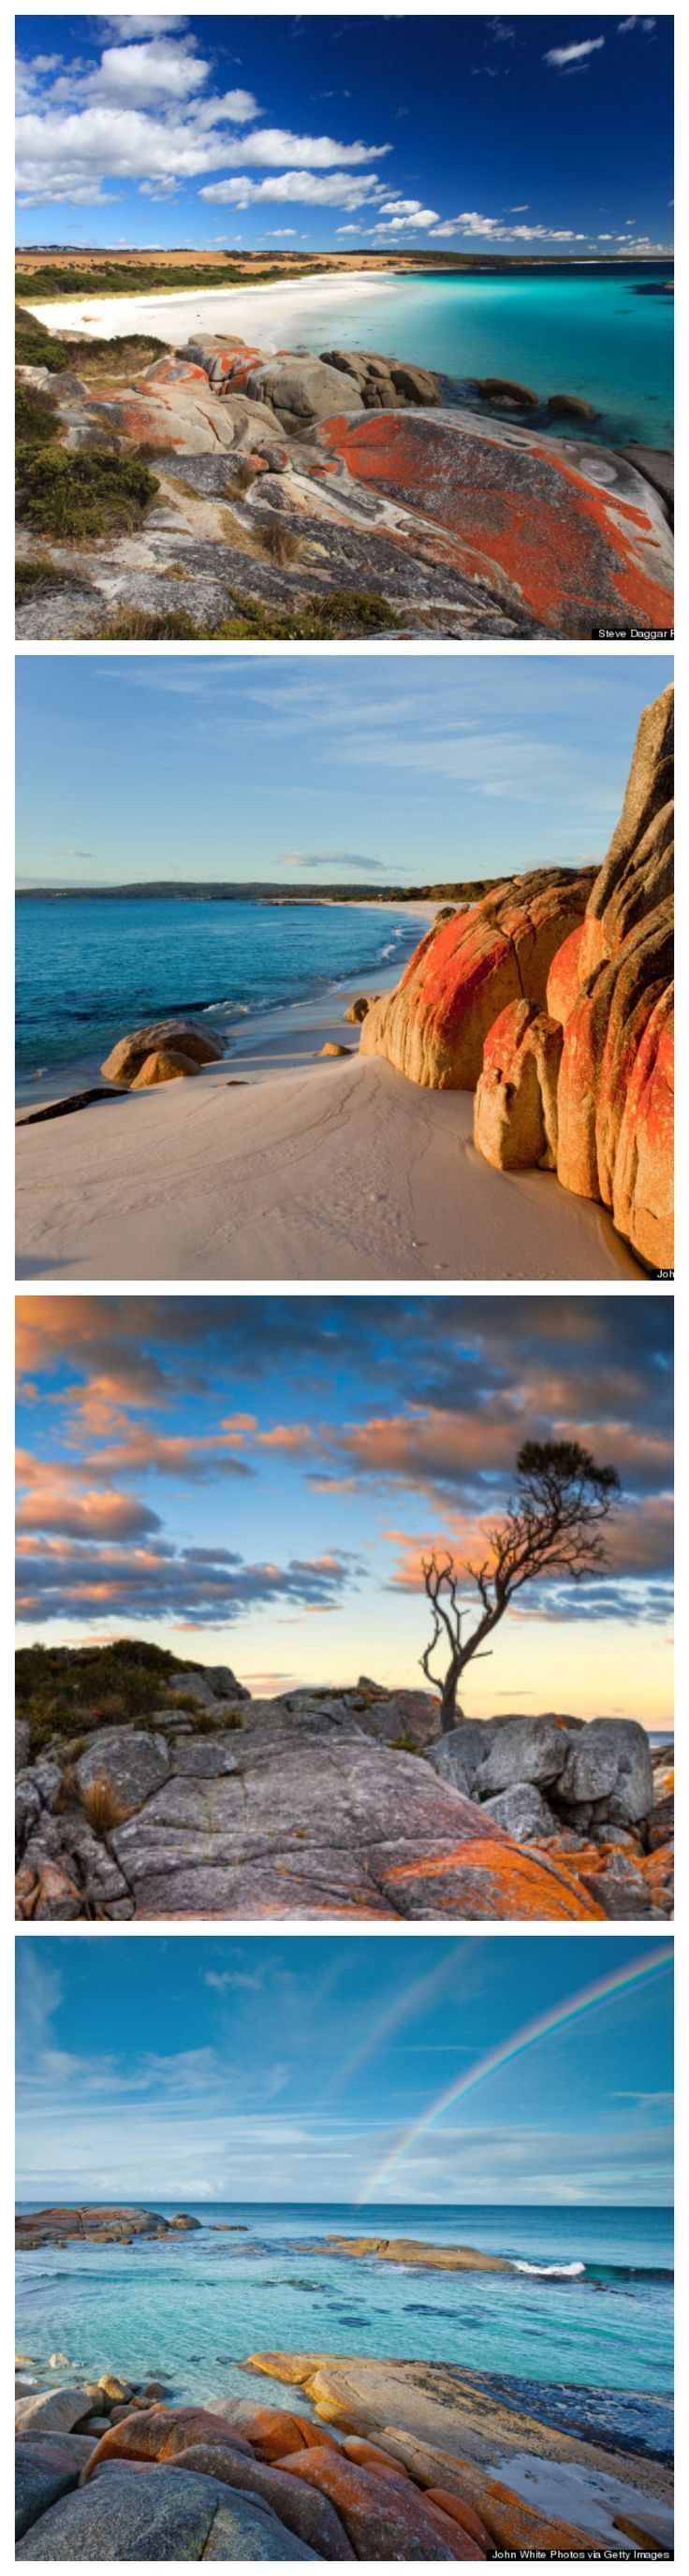 The Bay of Fires is nothing short of stunning